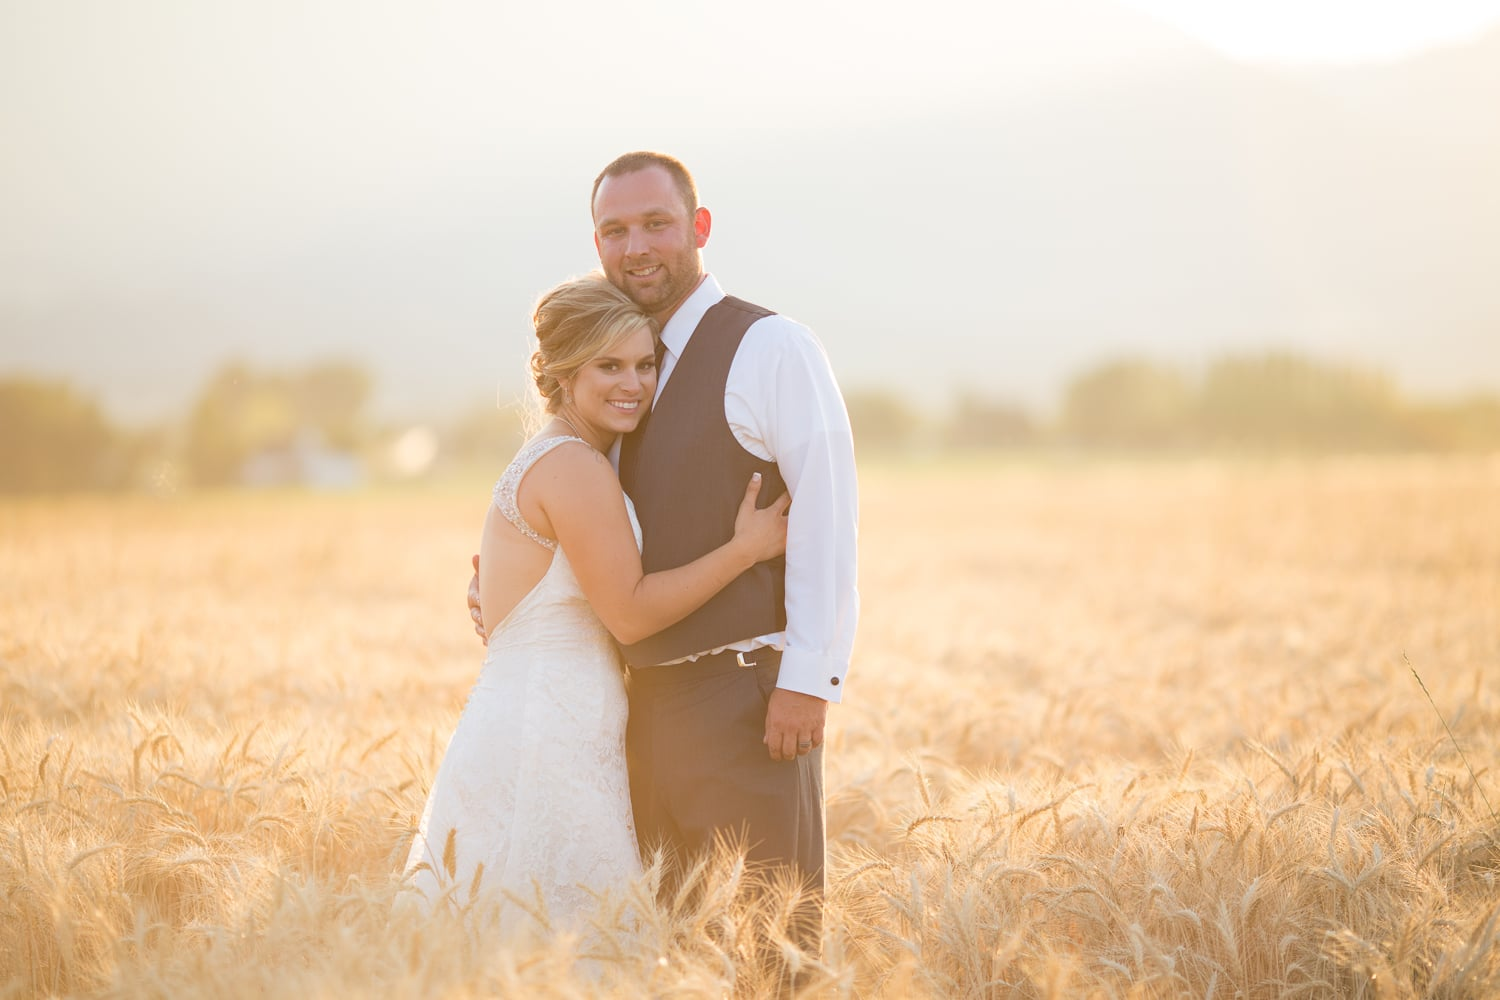 hixson-studio-missoula-wedding-photographer-0045.jpg